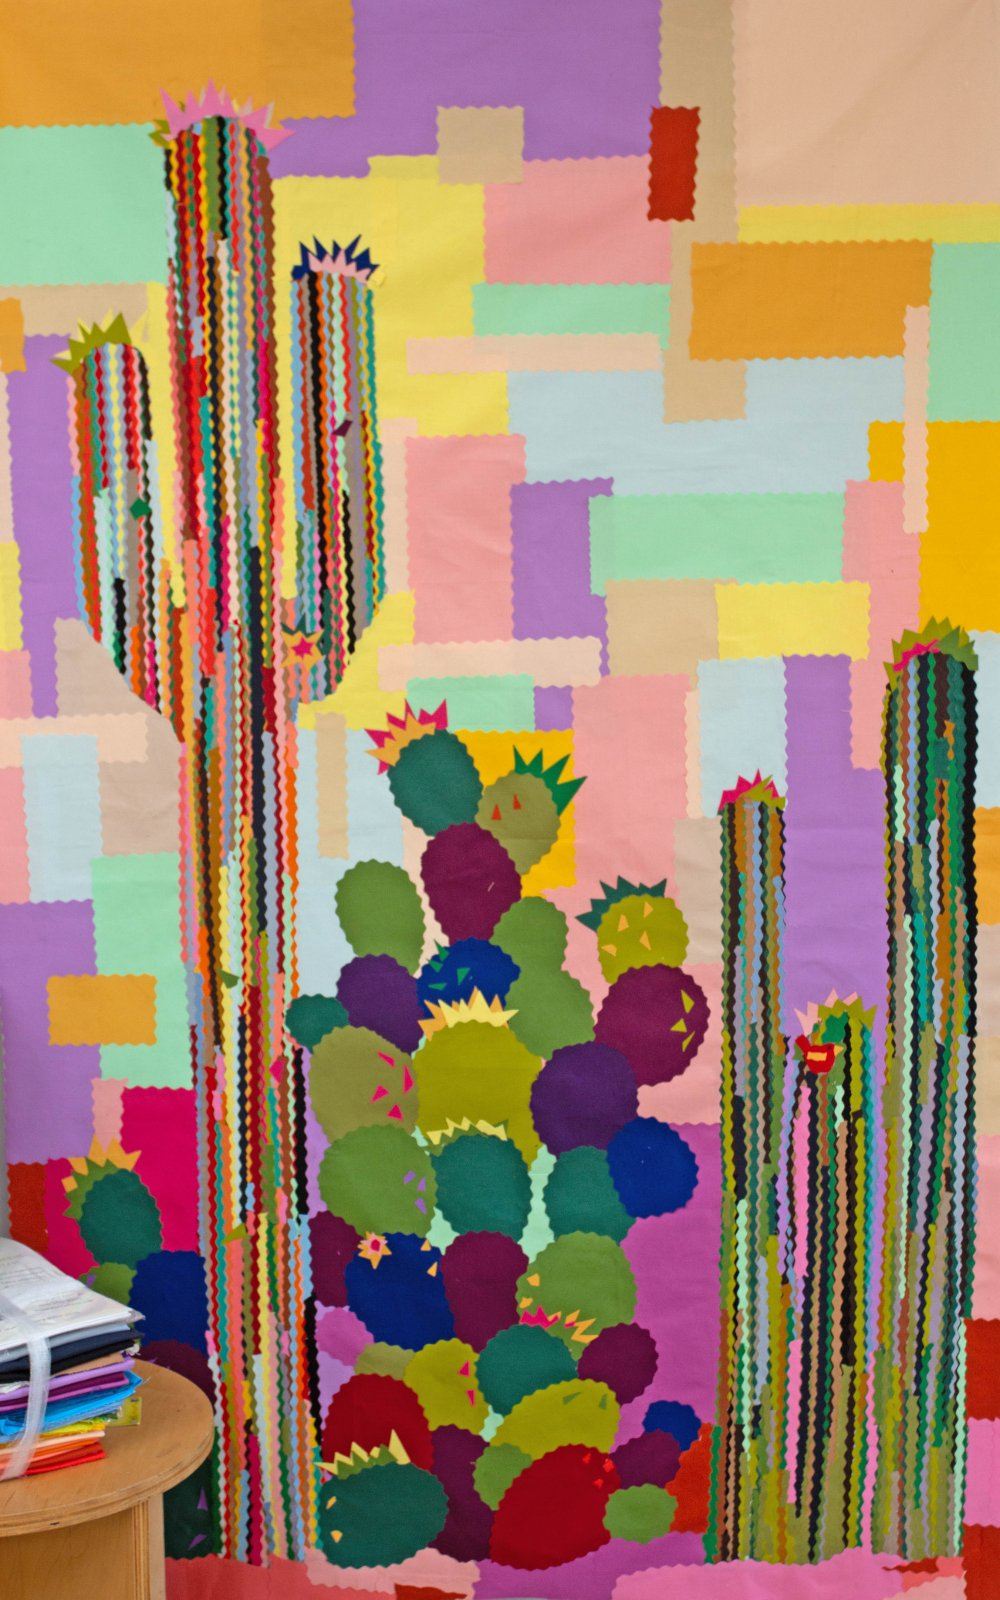 Cotton Couture Cacti Collage Kit